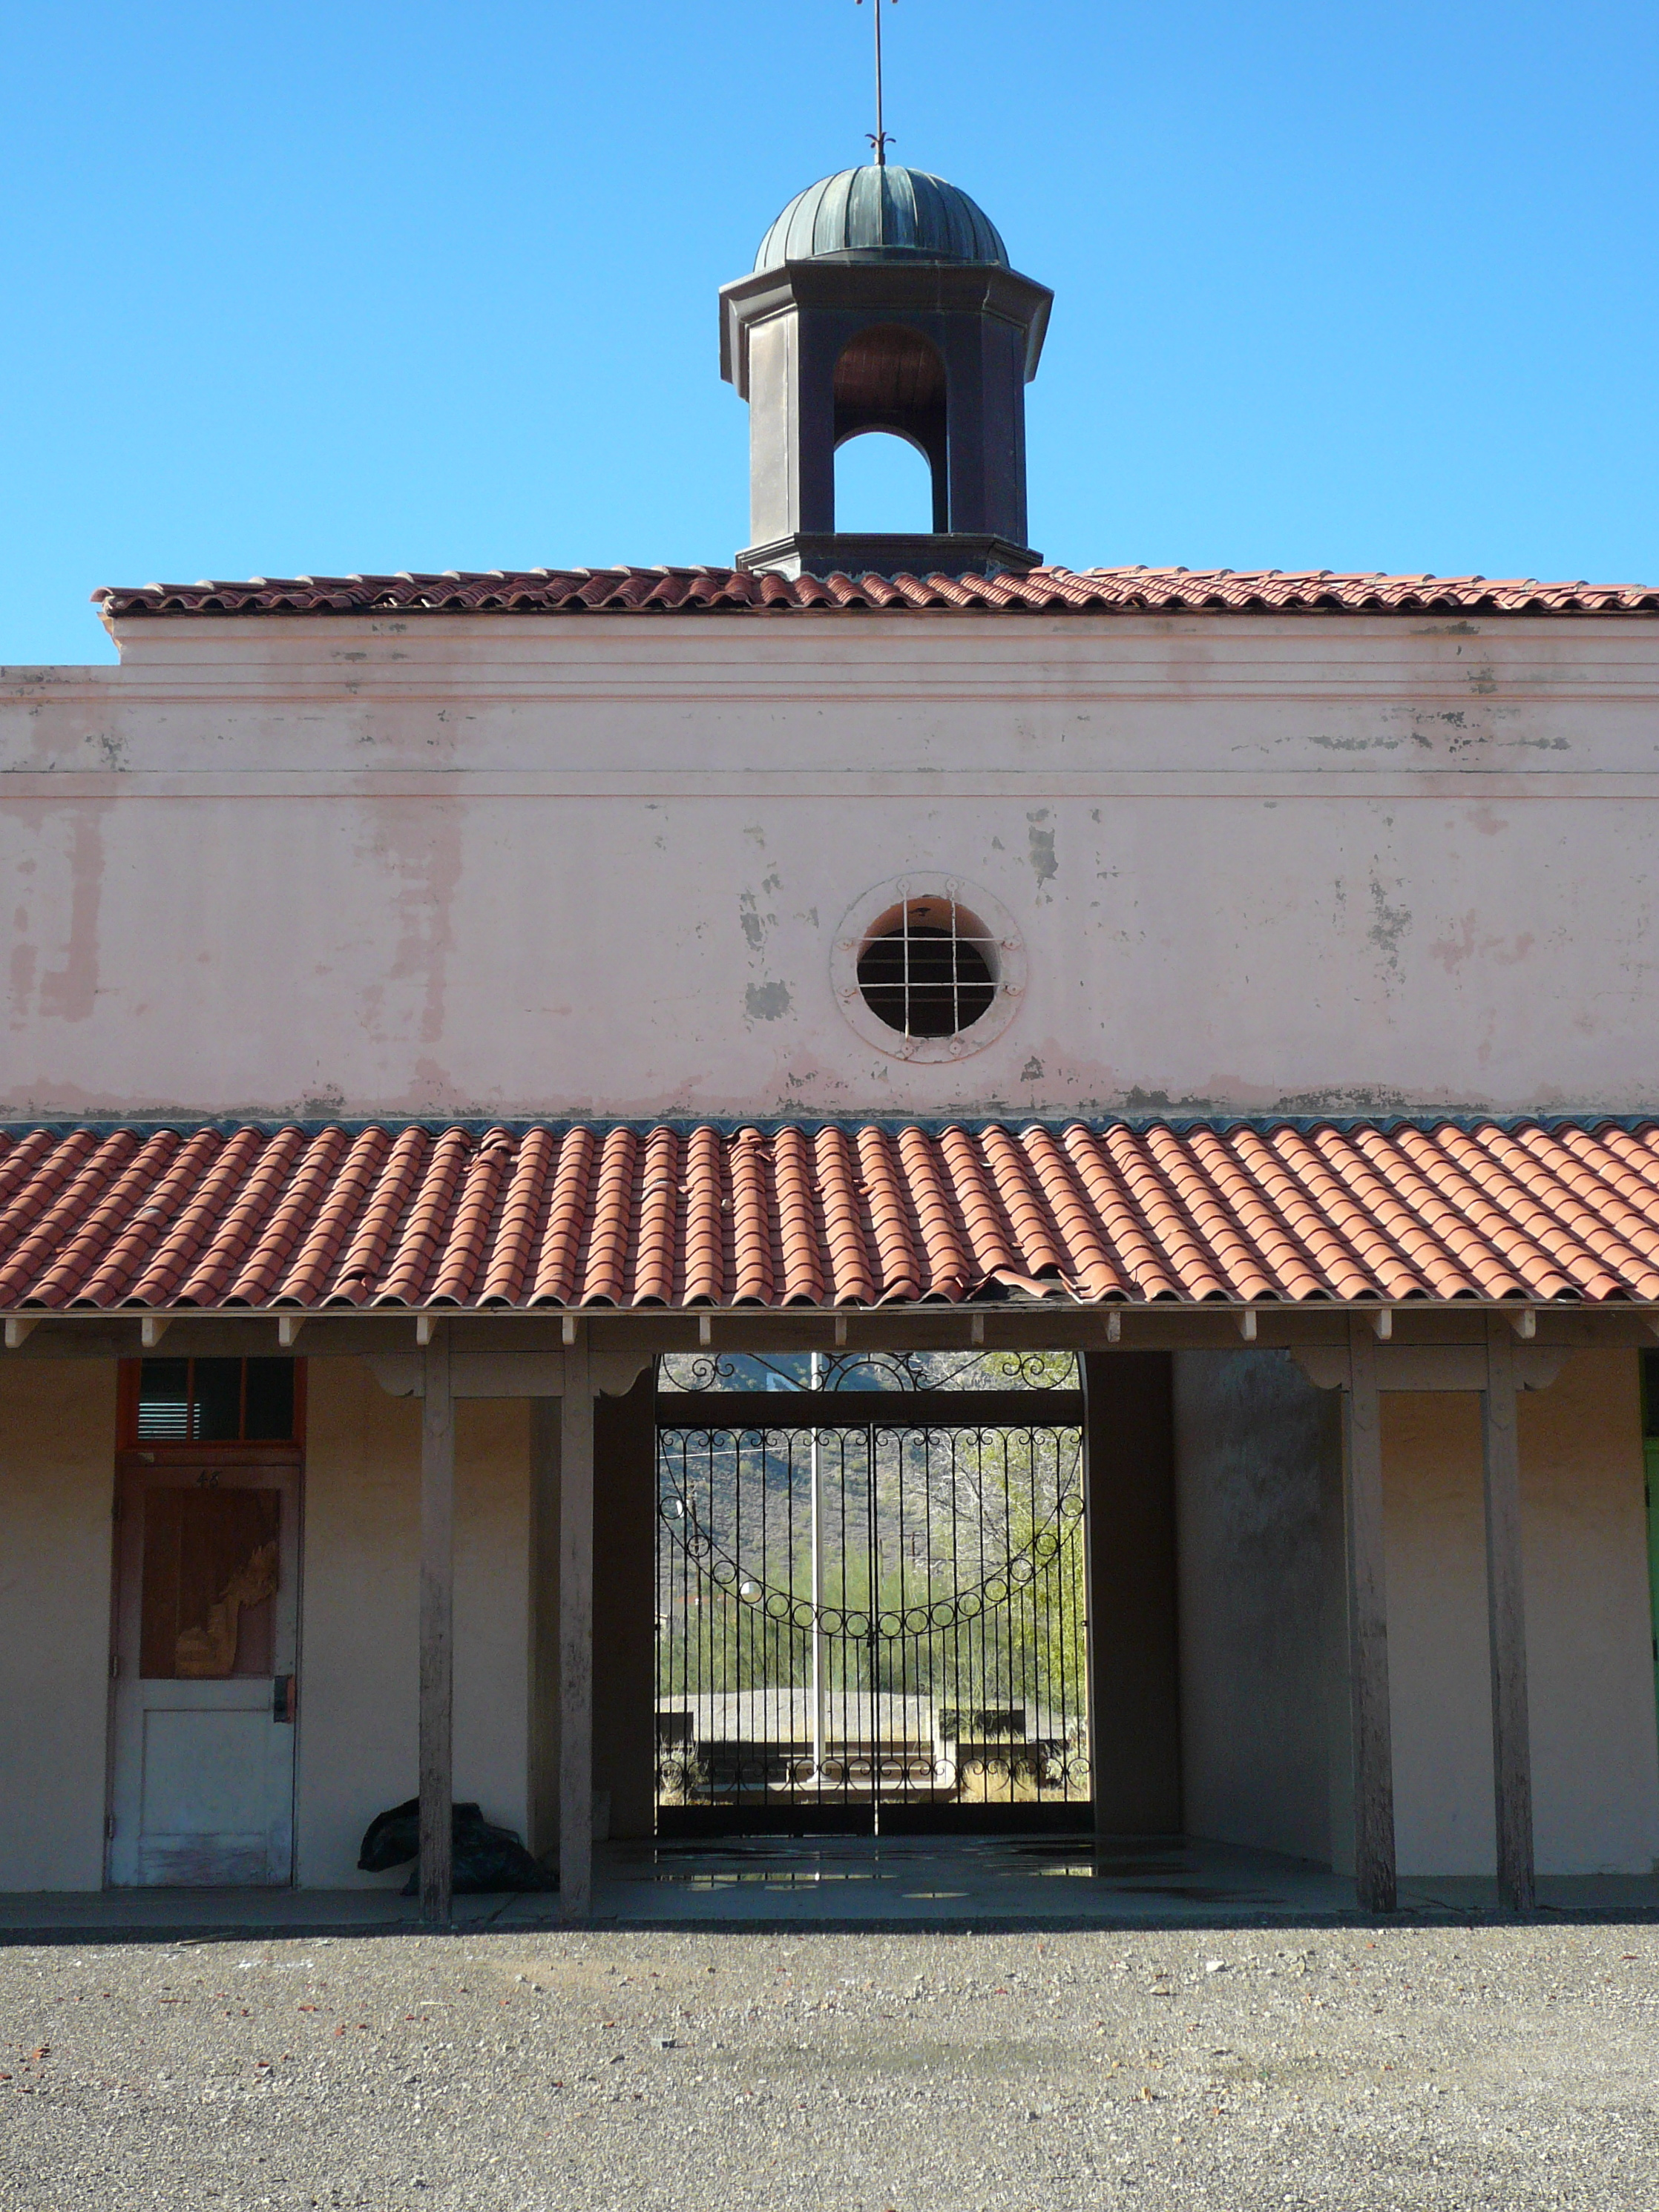 The main entrance before renovations. The stucco walls and tile roofs were all restored.